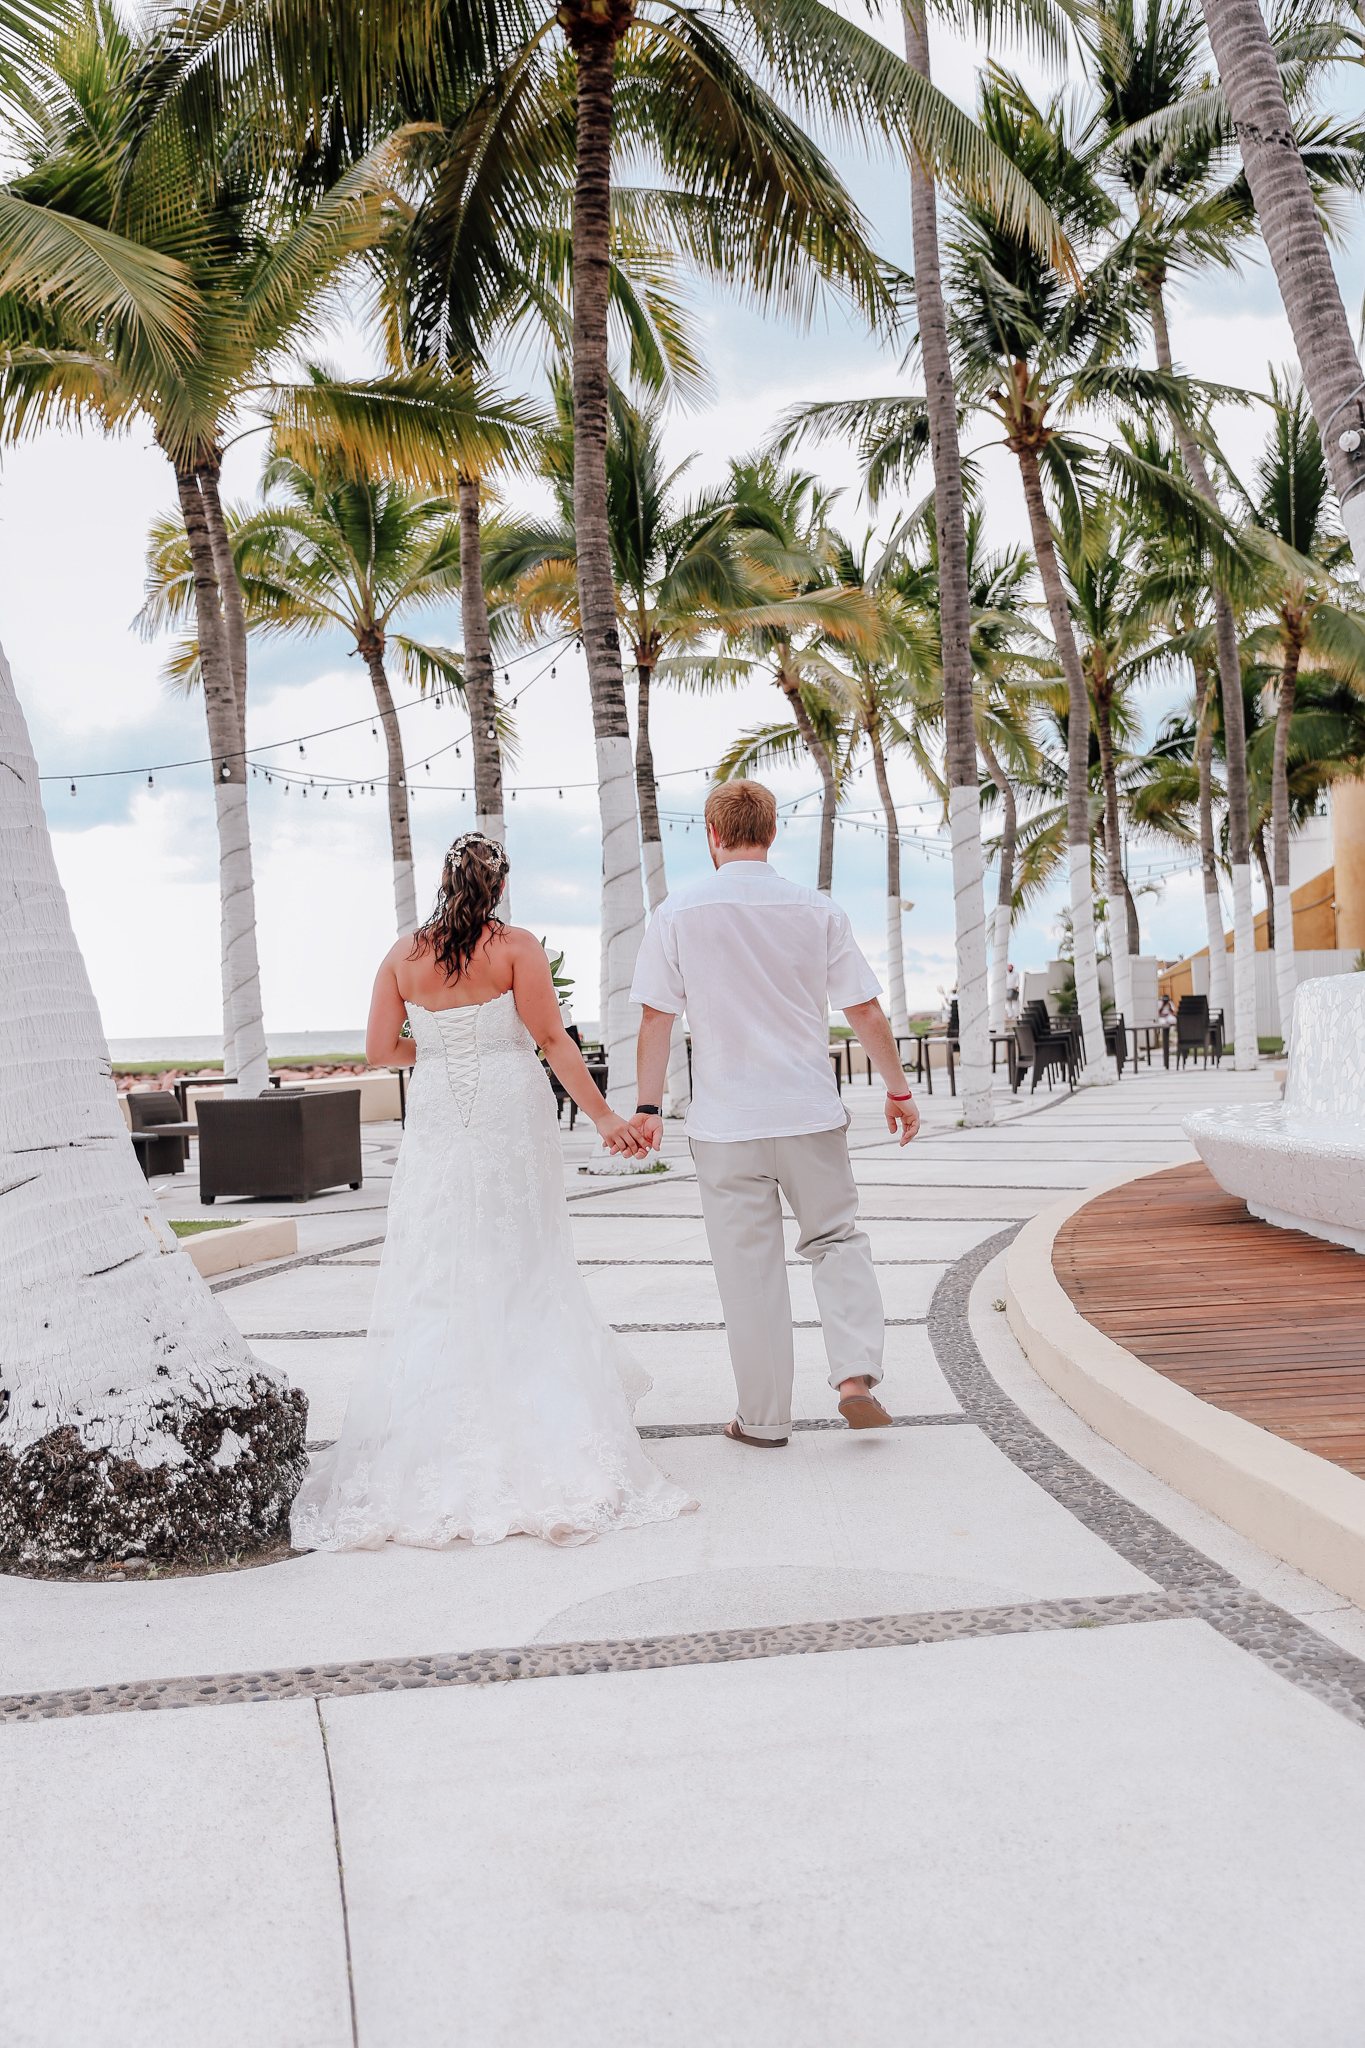 Tiffany and Ryan - Puerto Vallarta Wedding Photographer - 88.jpg